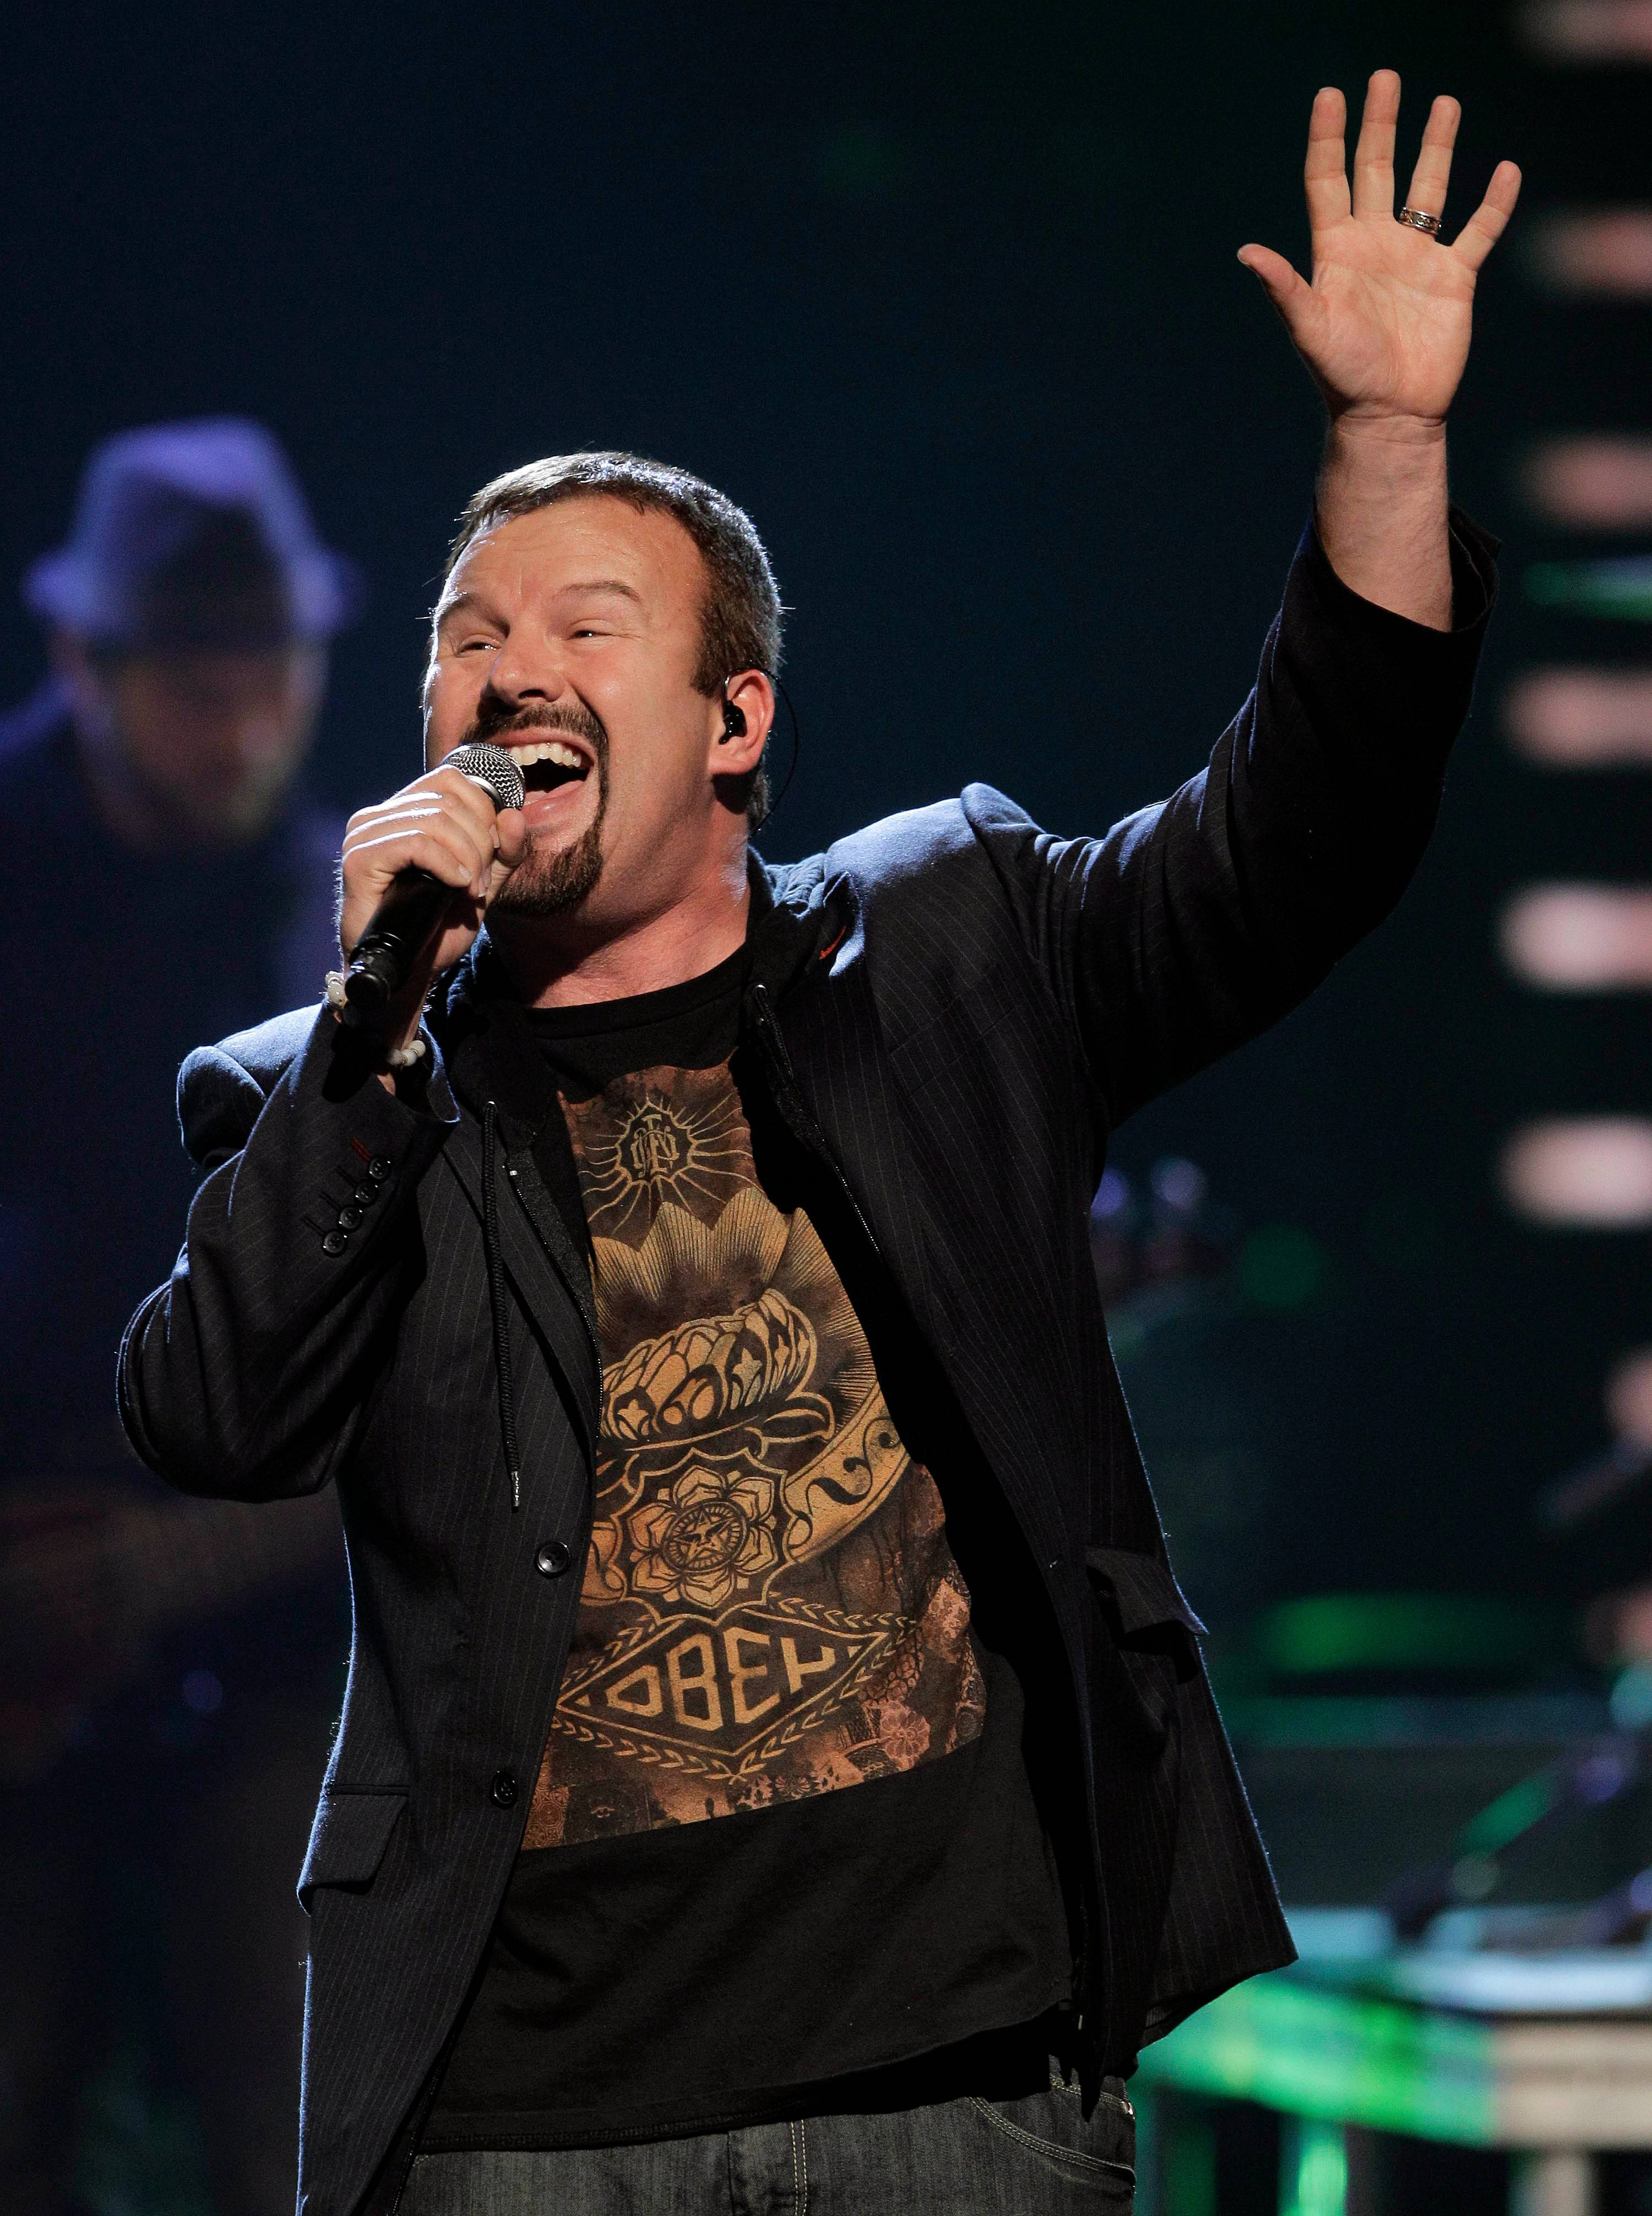 Mark Hall and Casting Crowns play the Sears Centre Arena in Hoffman Estates on Friday, March 14.